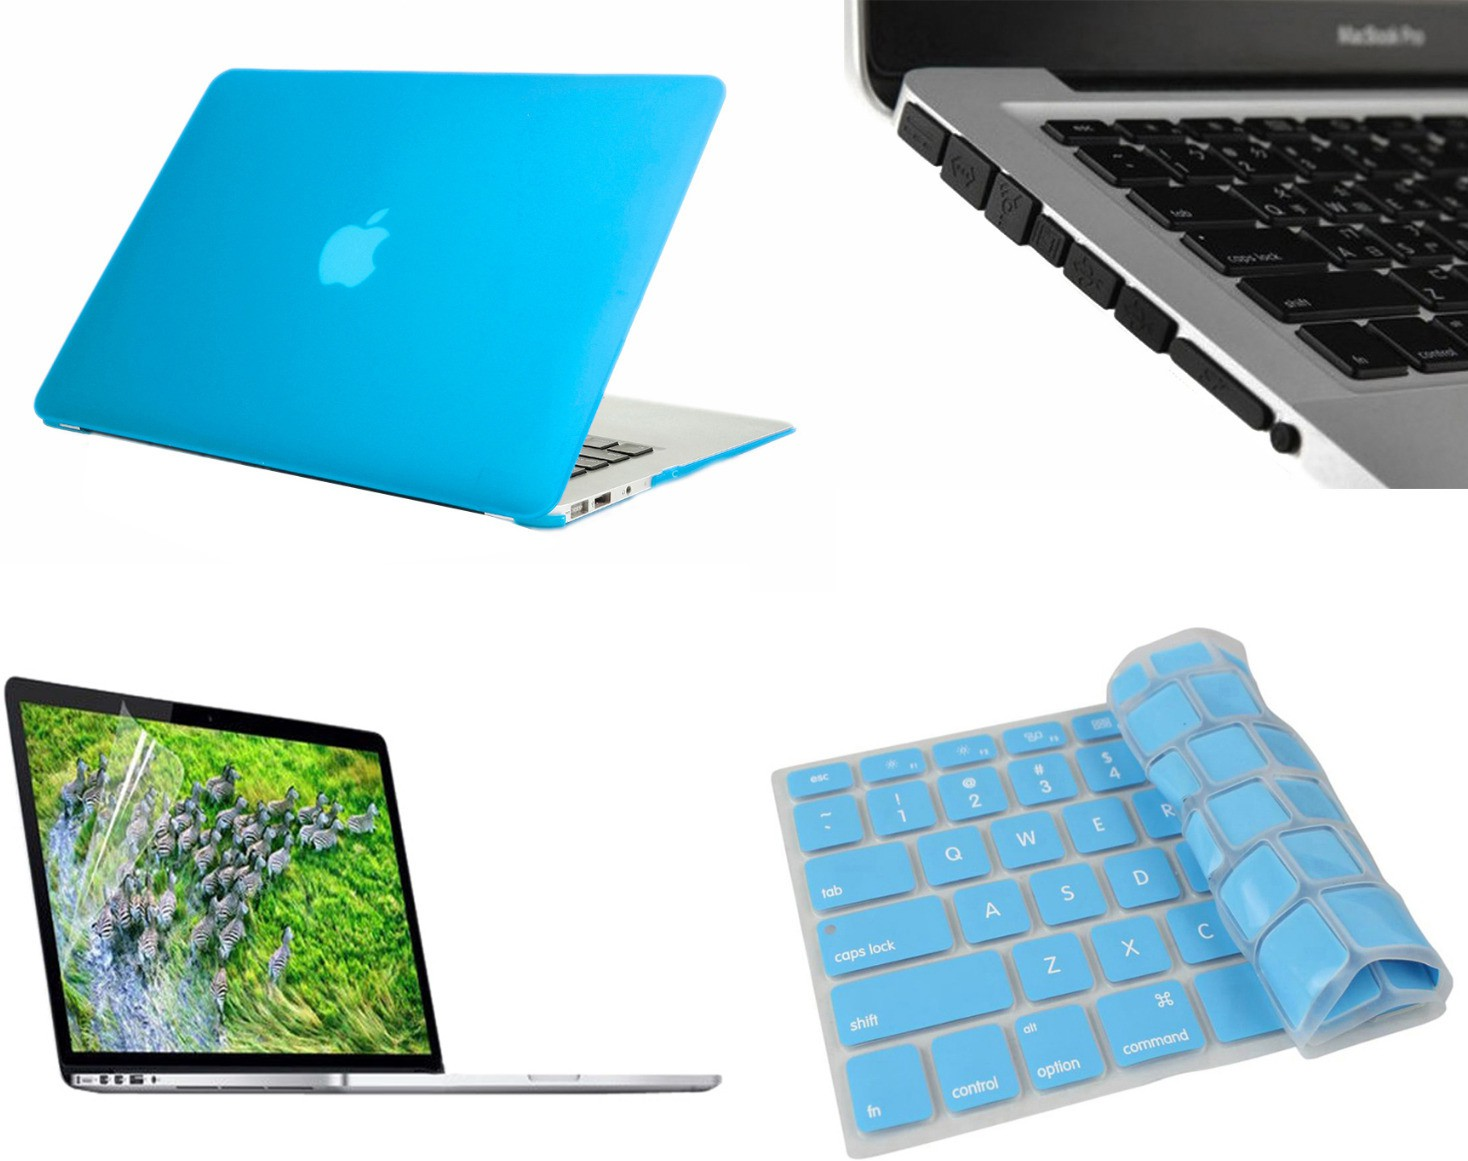 Pindia Aqua Blue Matte Finish Apple Macbook Pro 15 15.4 Inch Mb985hn/A Mb985ll/A Hard Case Shell Cover Anti Black Dust Ports Keyboard Screen Guard Combo Set